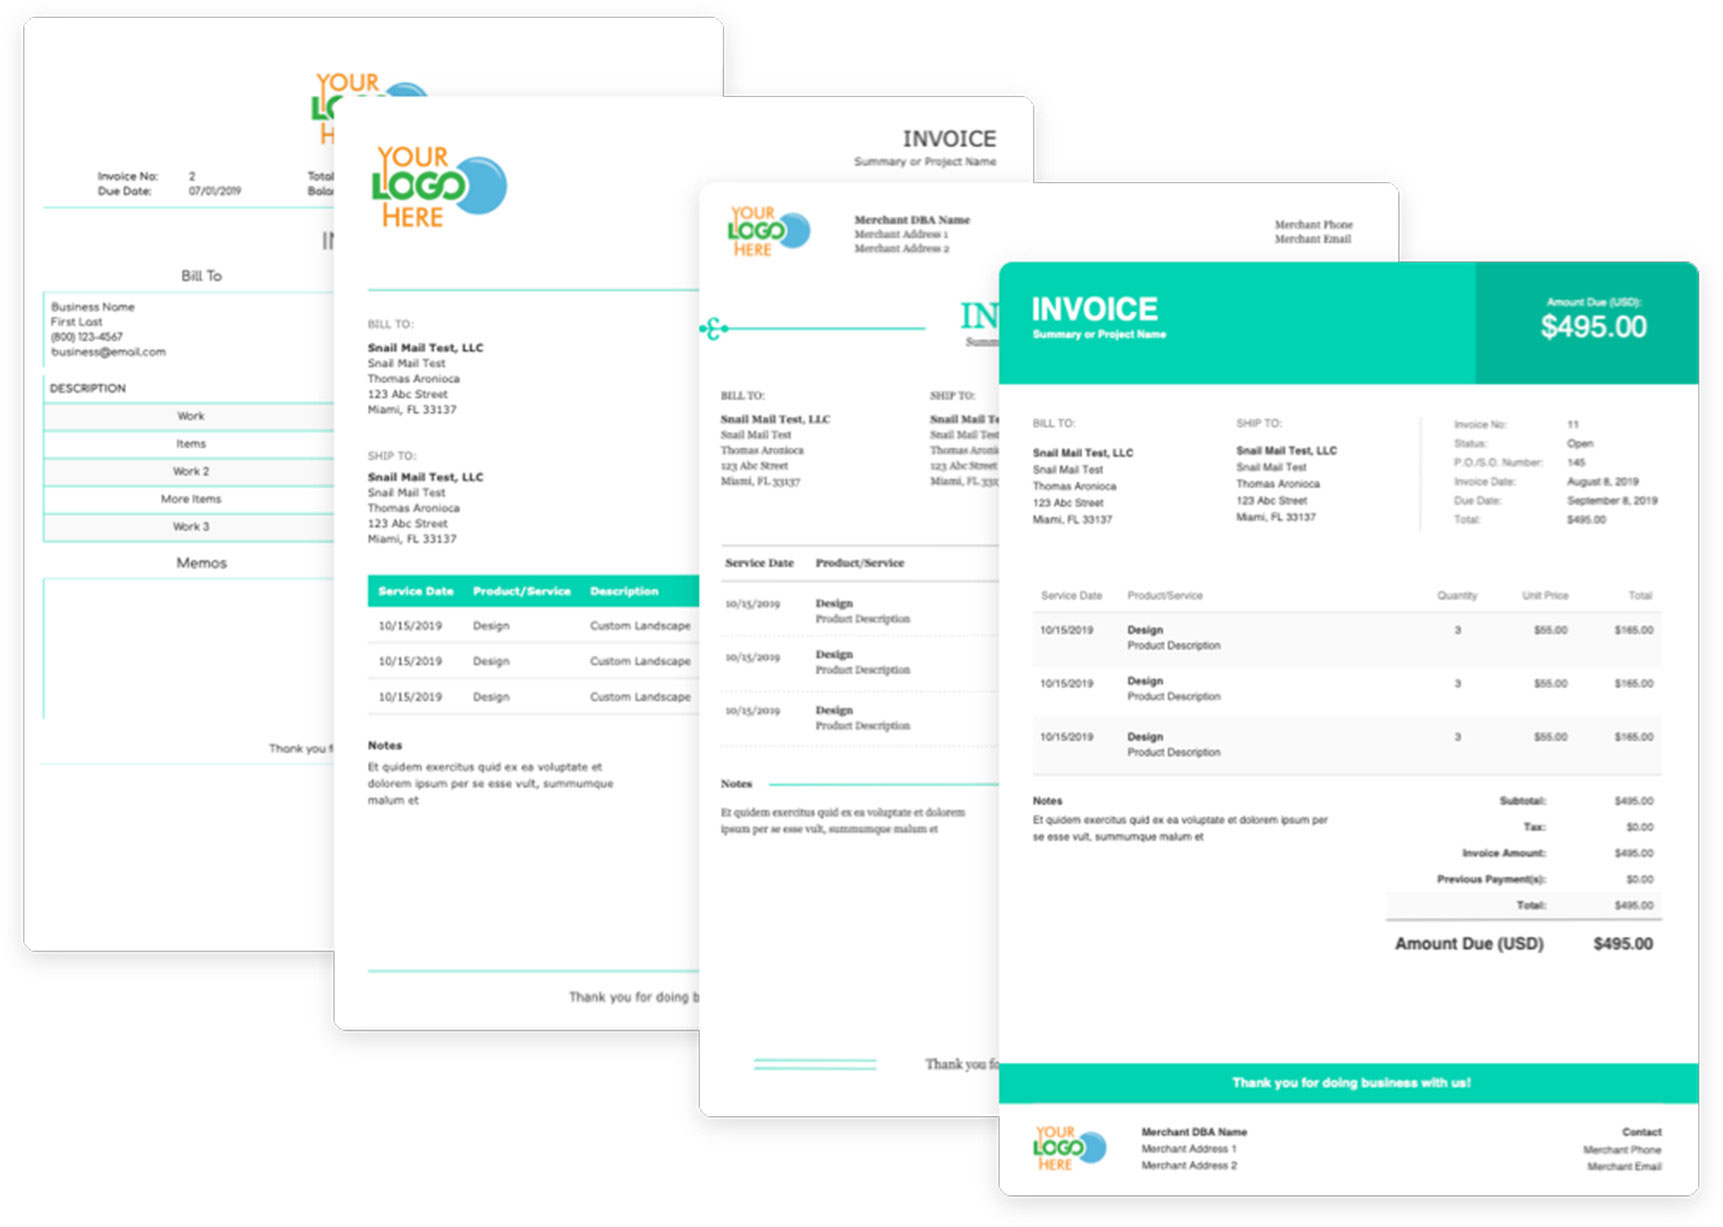 We offer multiple invoice templates to choose from, all branded with your colors and logos.